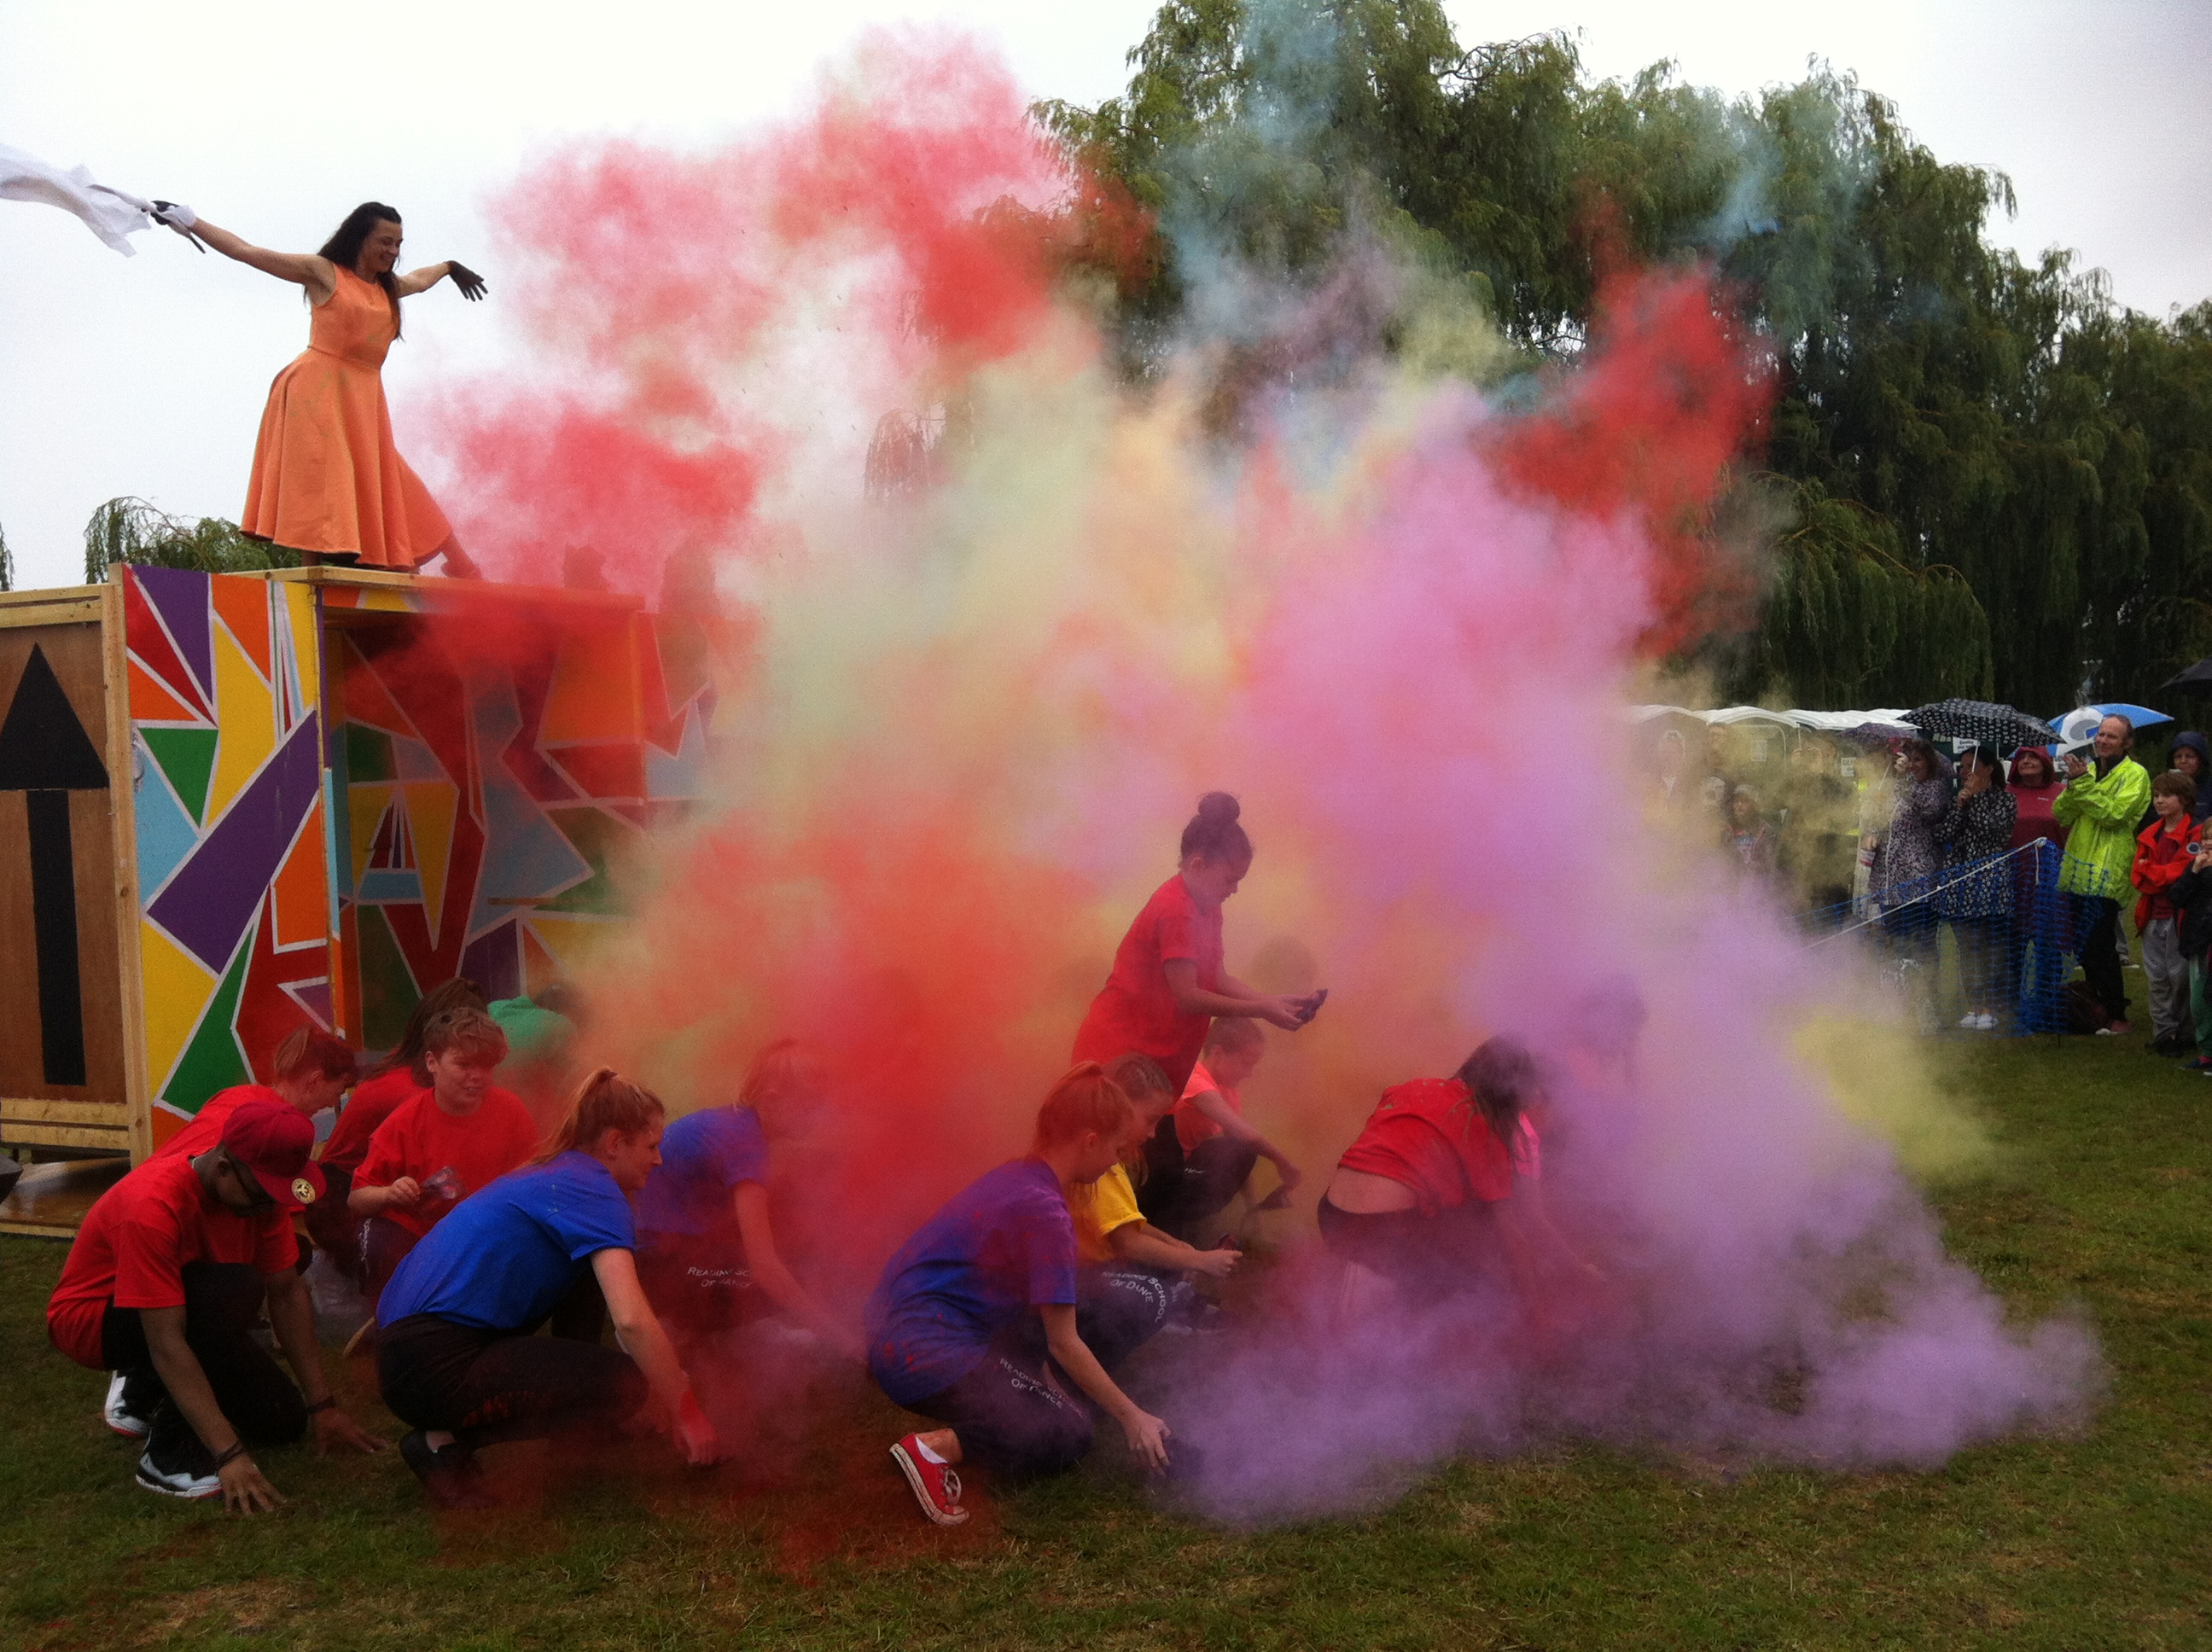 Outdoor performance with colourful smoke